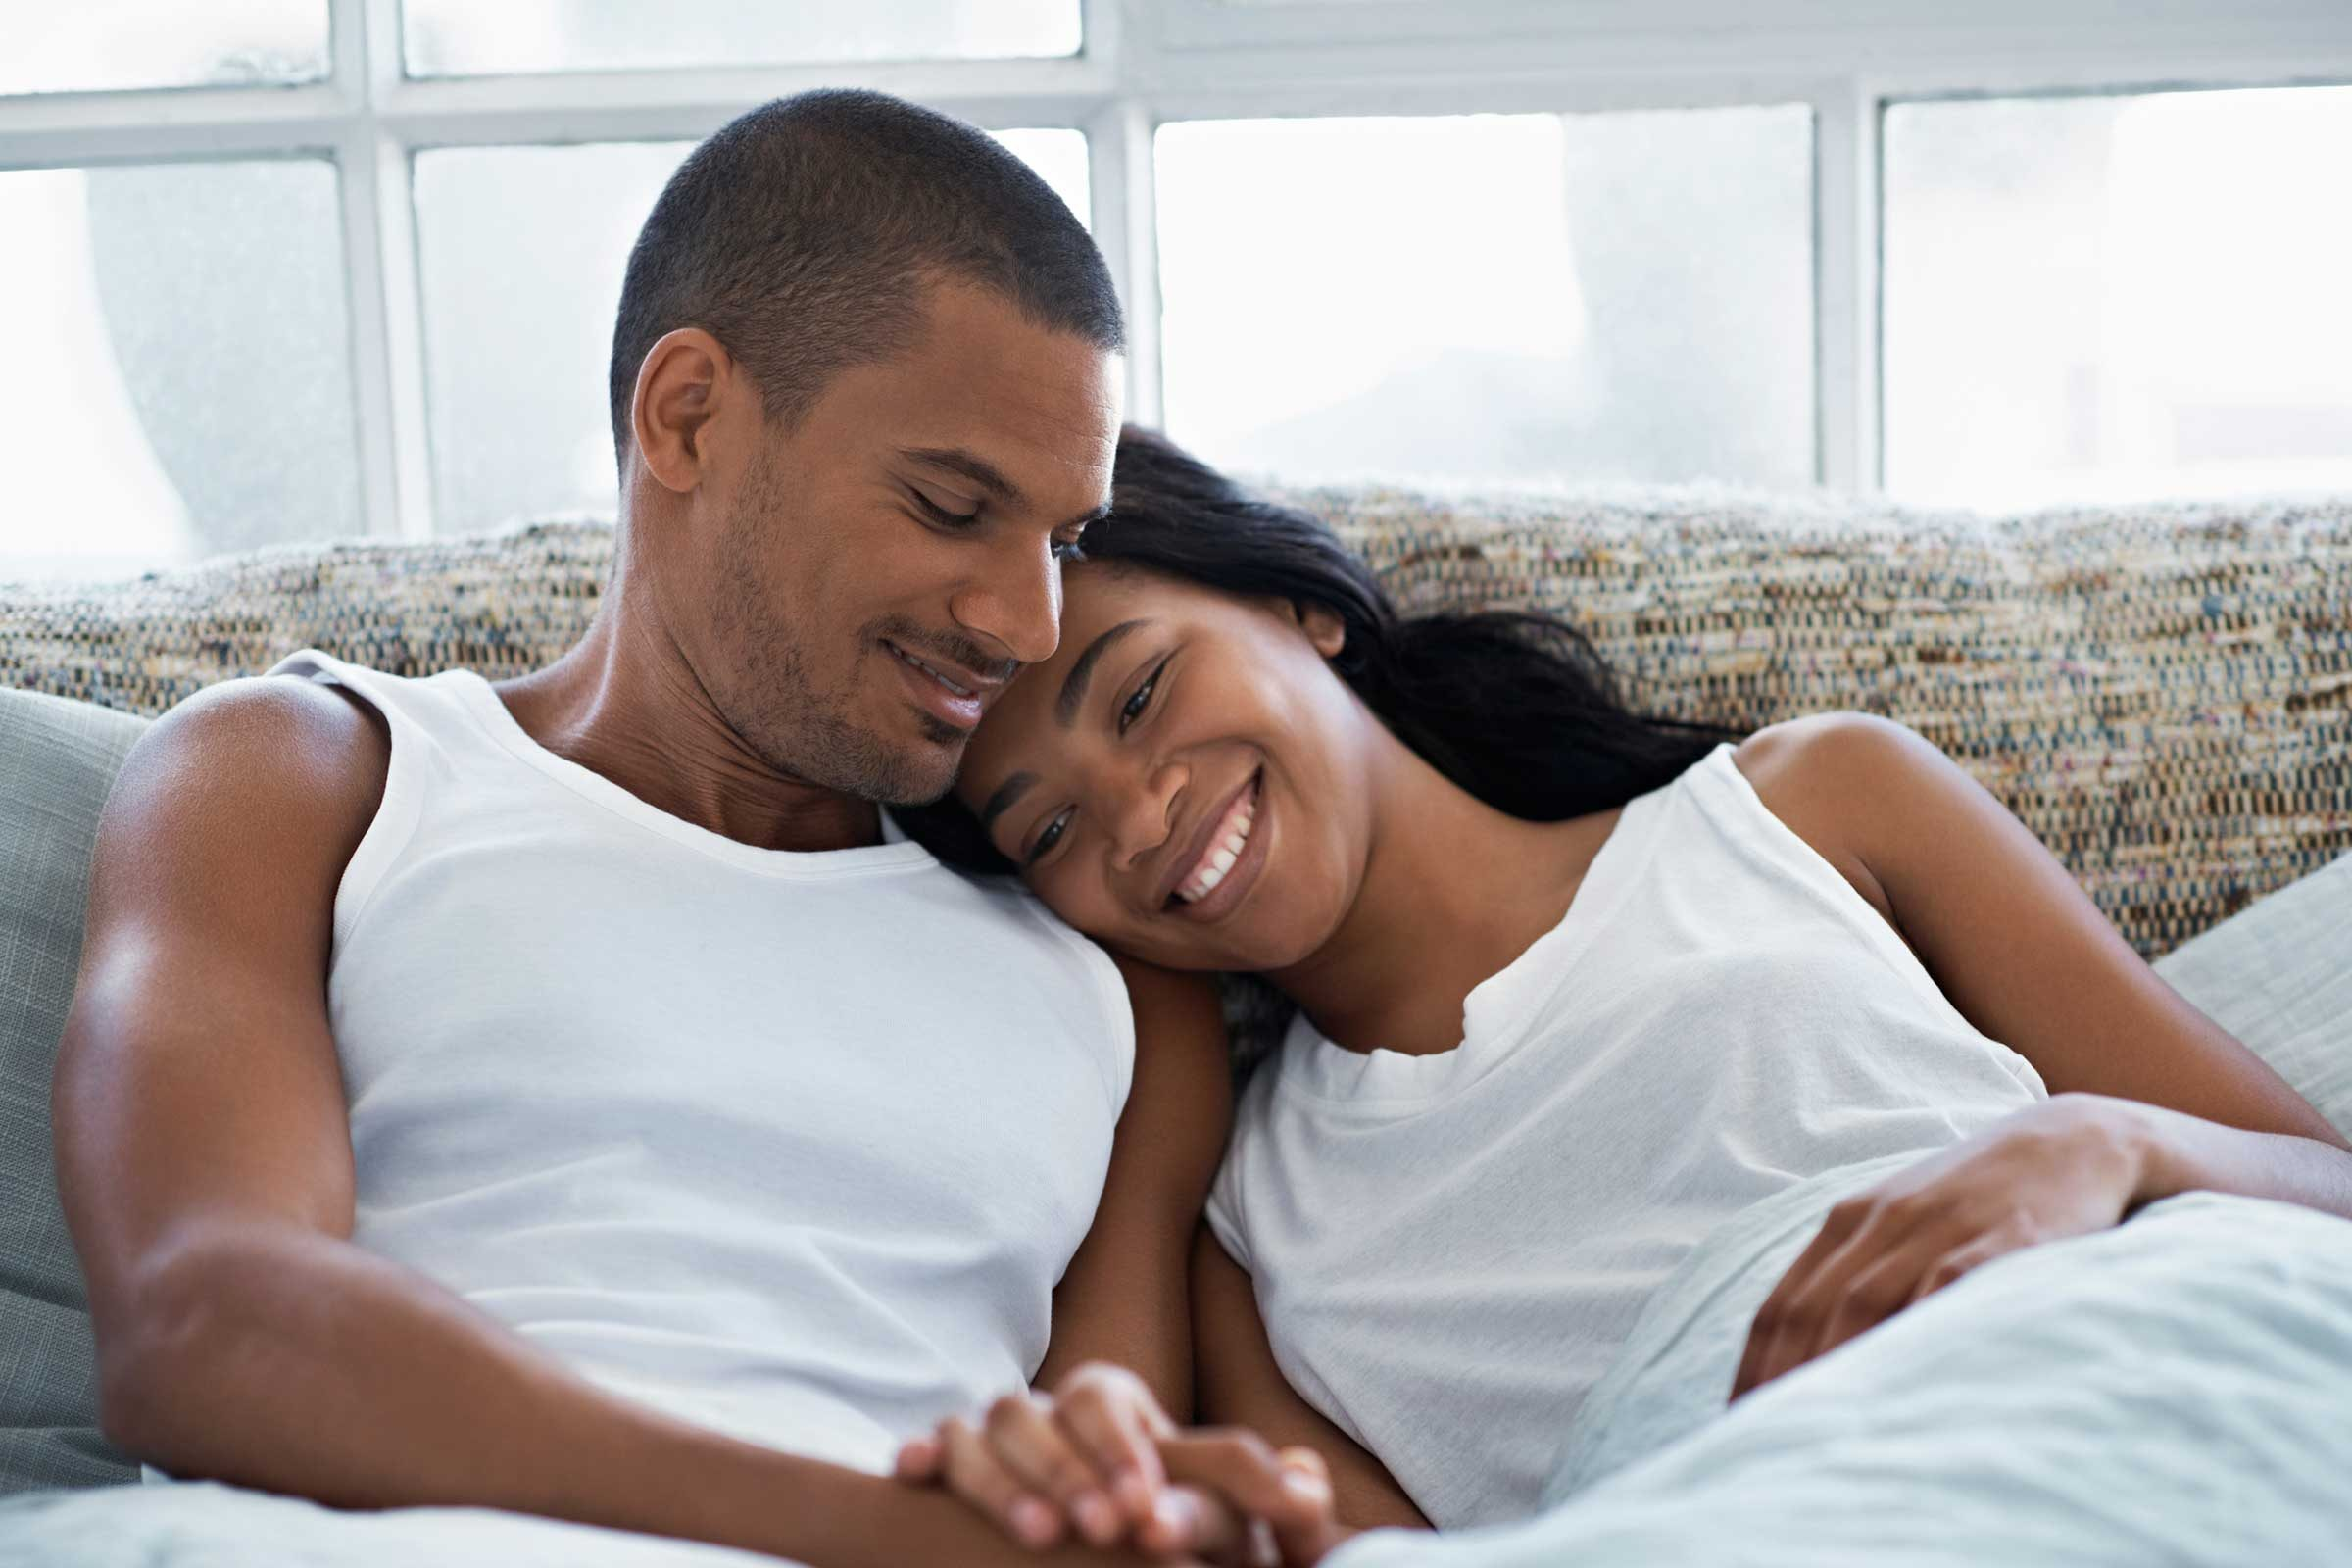 sample online dating profiles to attract men